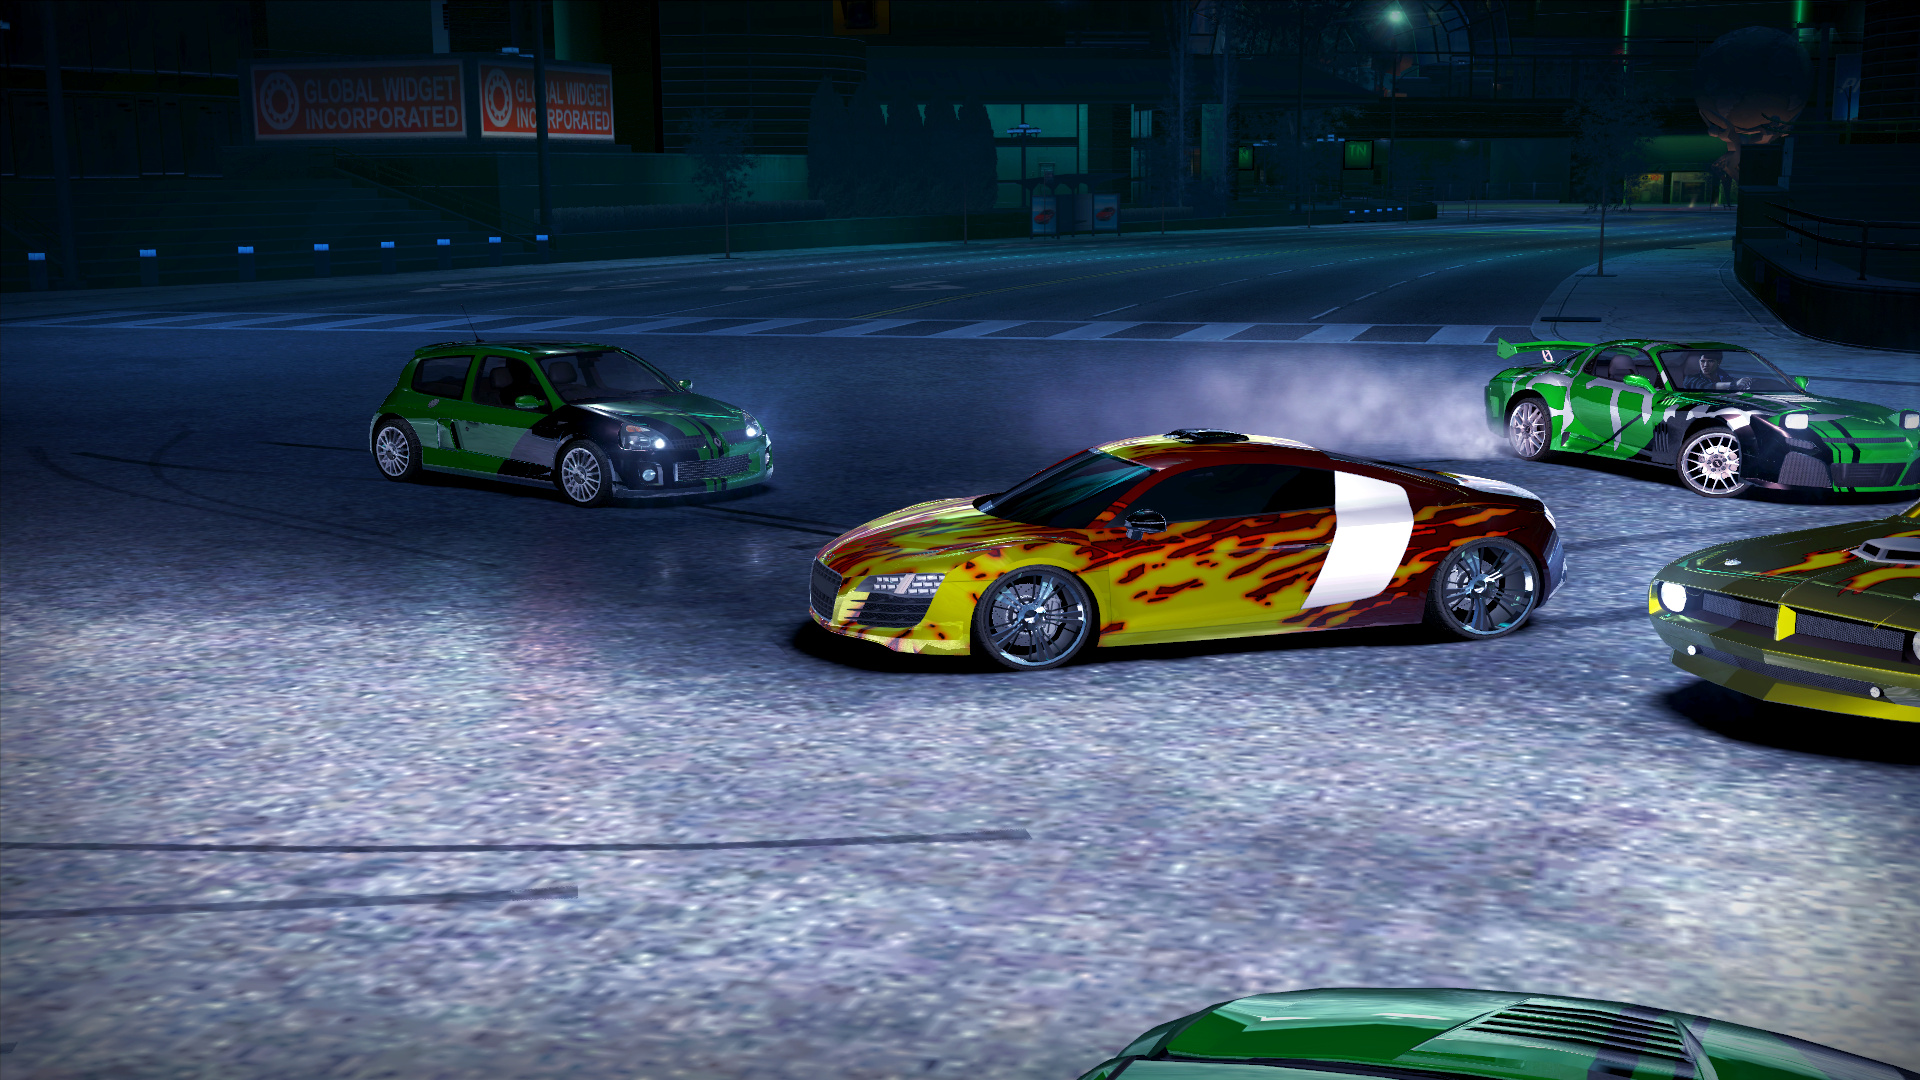 NFSC 2016-12-16 23-16-59-36.jpg - Need for Speed: Carbon